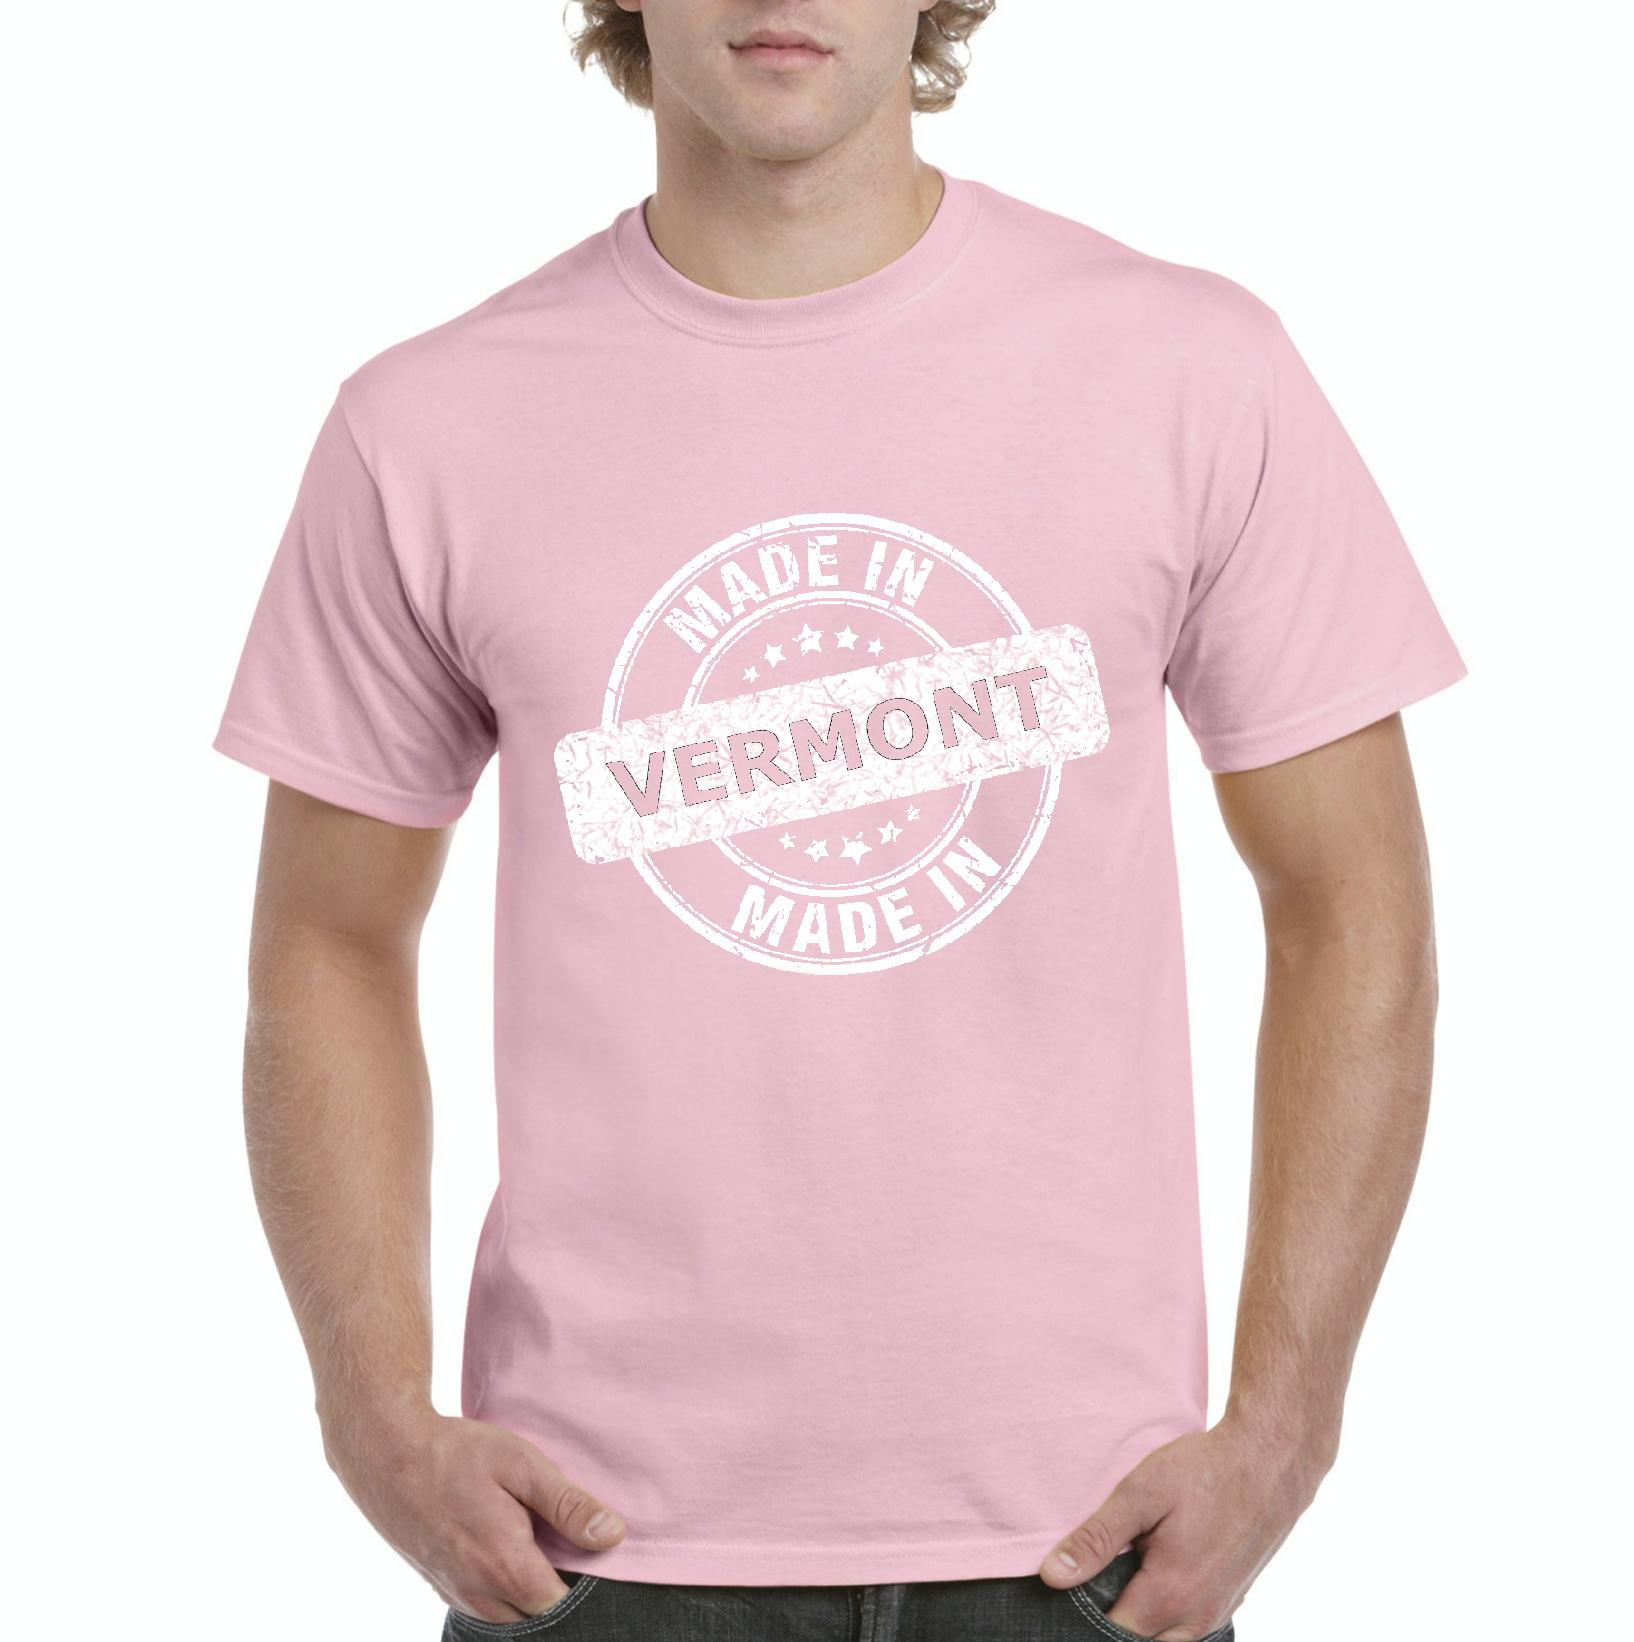 Made in VT Vermont Flag Burlington Map Catamounts Home of University of Vermont Mens Shirts